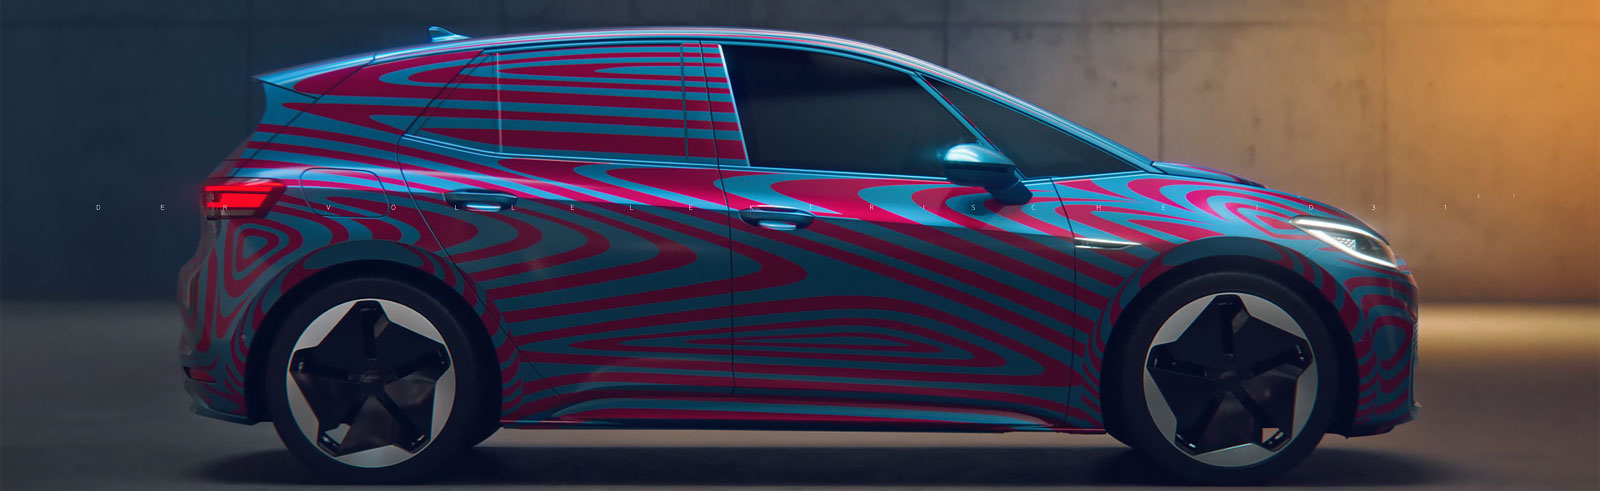 Volkswagen ID.3 dashboard teased in a commercial